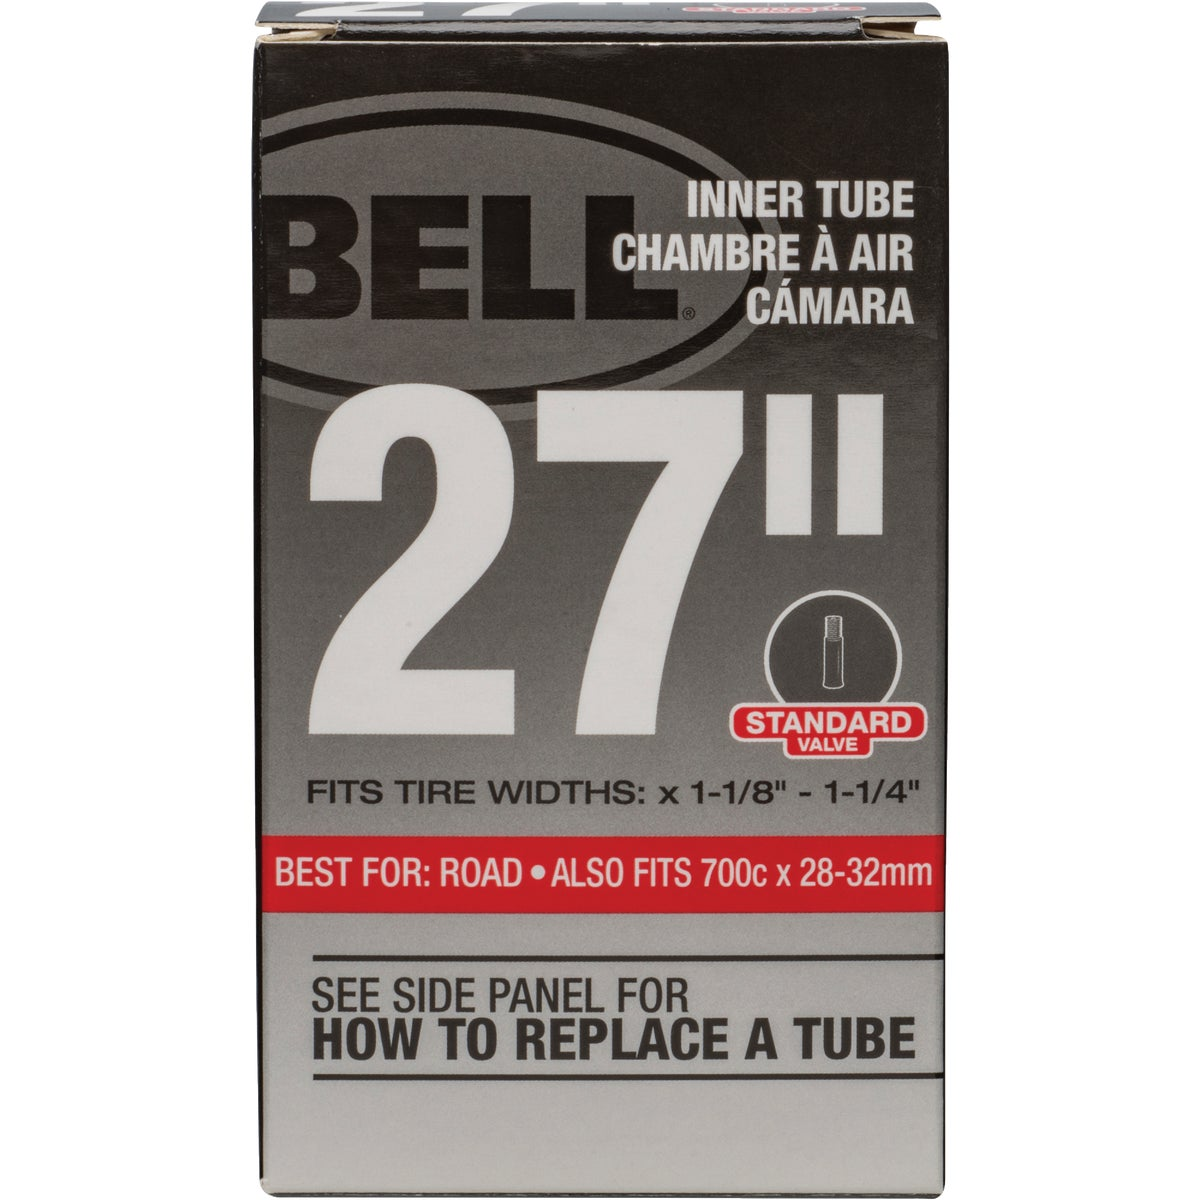 "27"" UNIVERSAL INNER TUBE - 7015462 by Bell Sports"